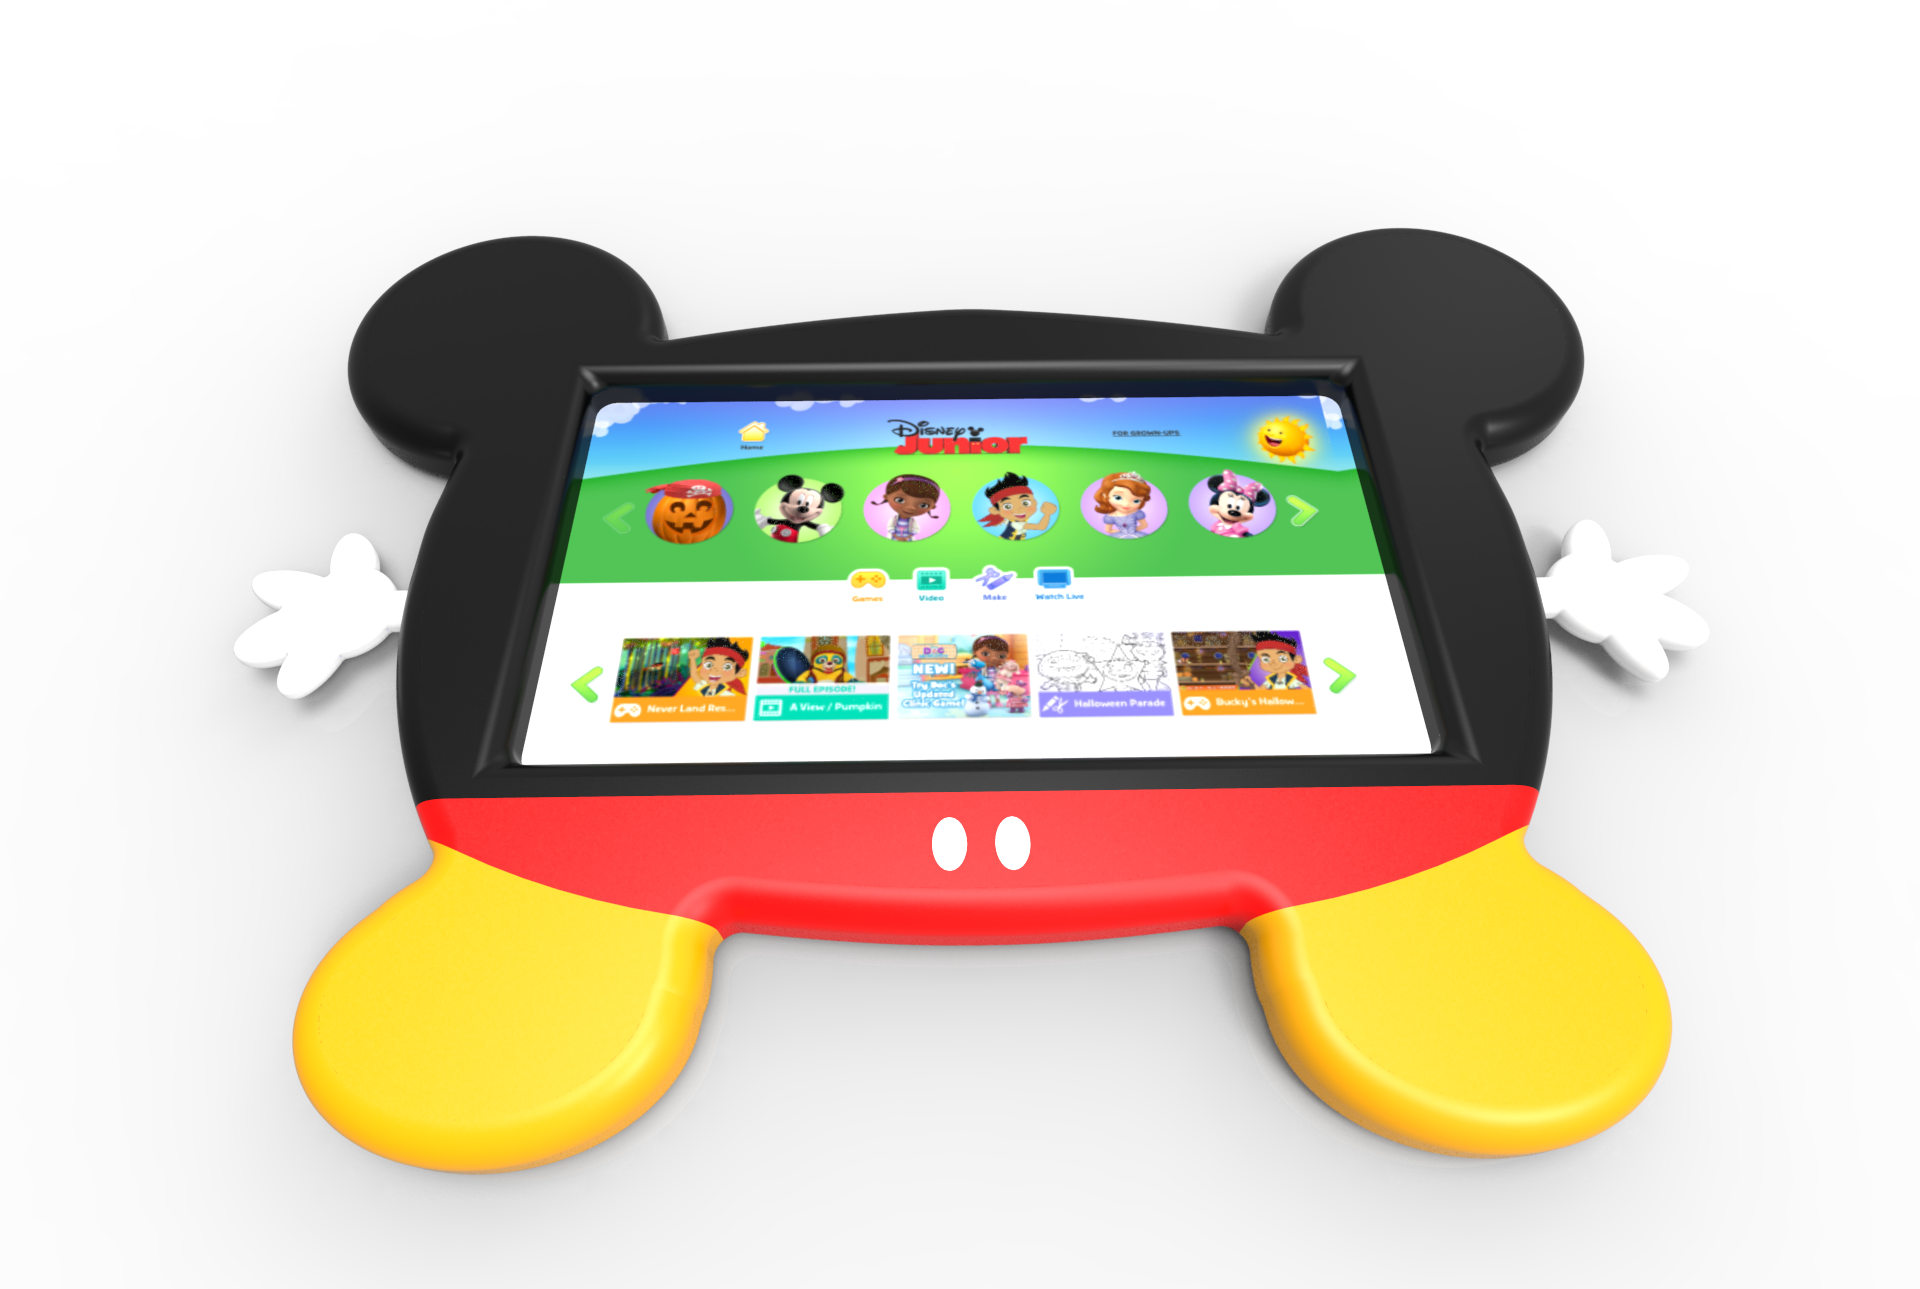 Cardboard Helicopter Product Design Cleveland Ohio Product Development Industrial Design - Disney Mickey Mouse Clubhouse Digital Smart iPad Tablet Electronics Case3.png